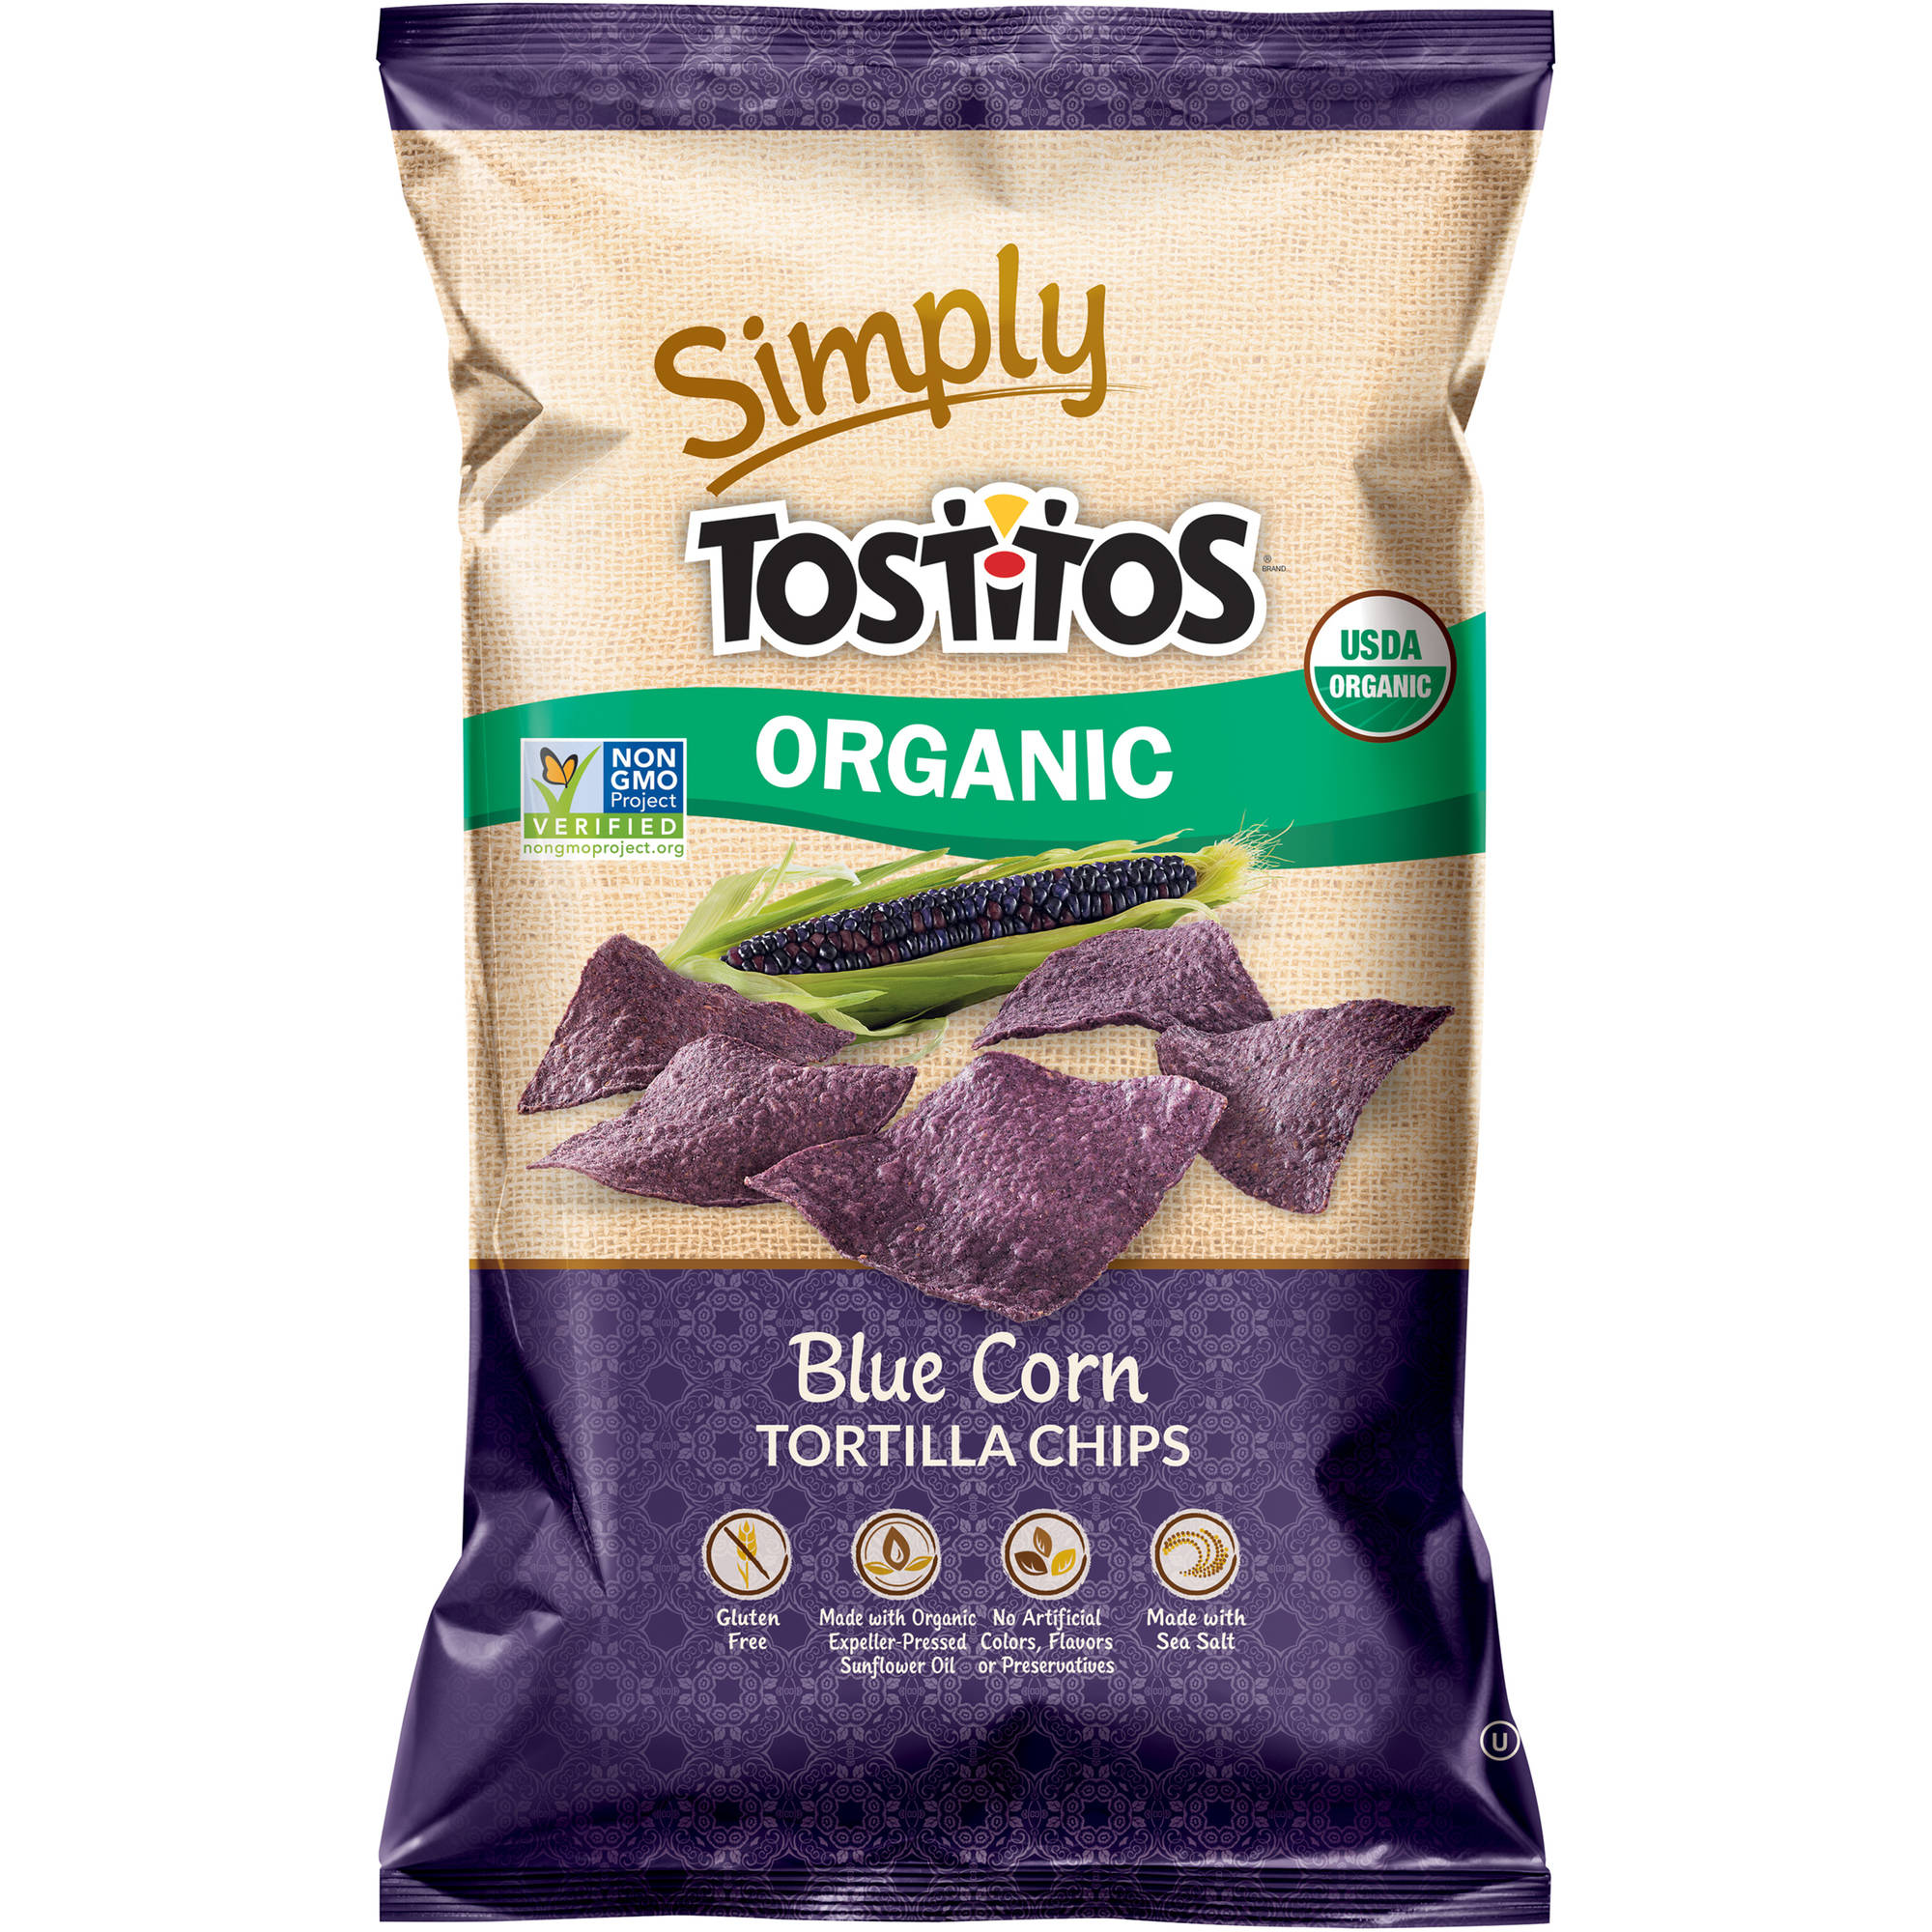 Tostitos Organic Blue Corn Tortilla Chips, 8.25 oz